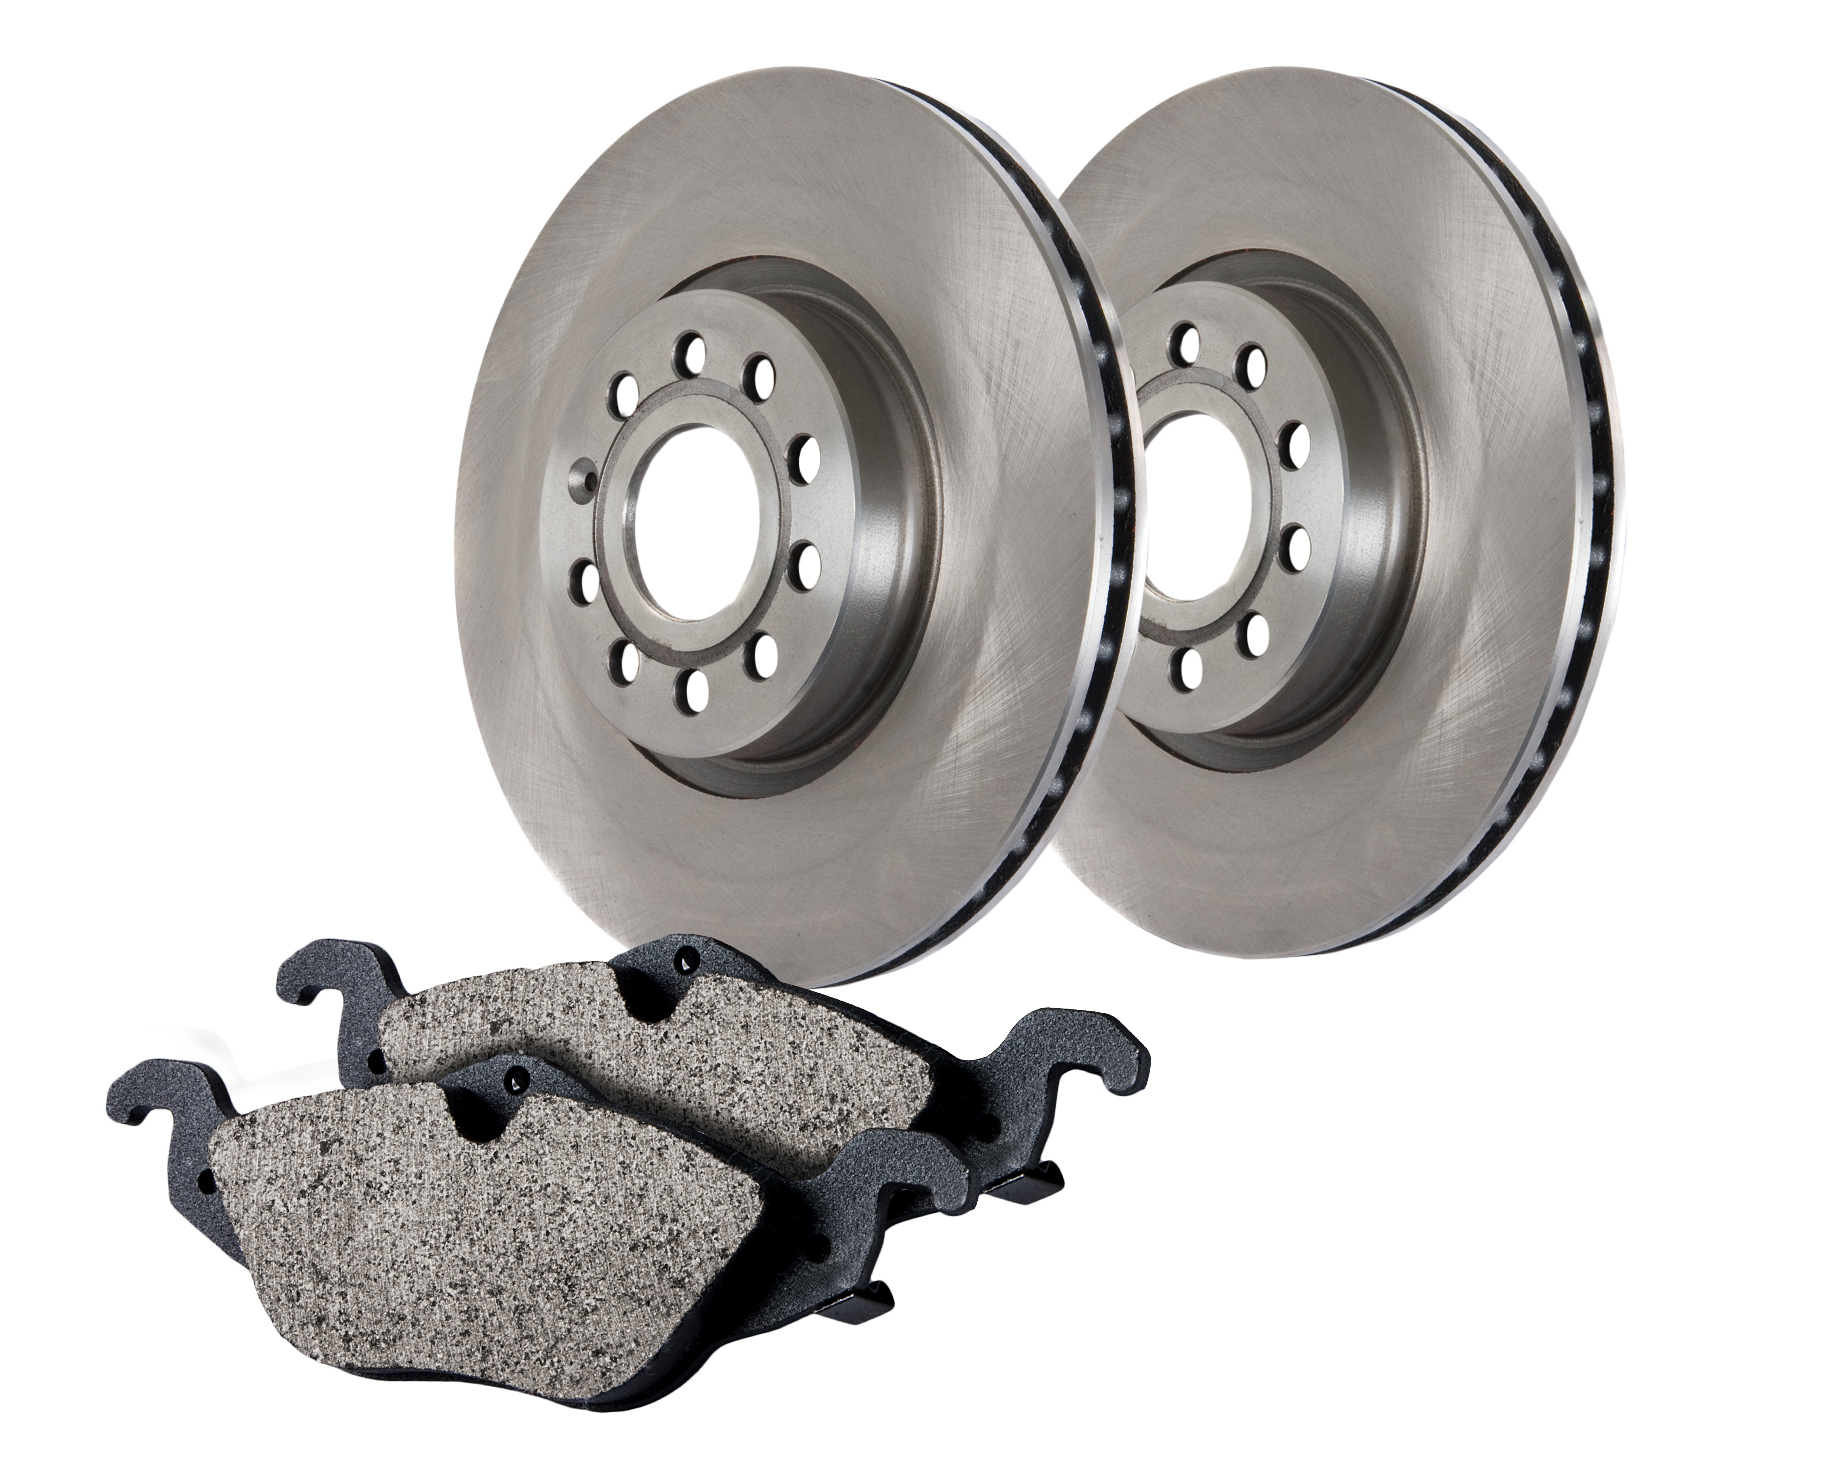 Centric Brake Parts 905.63012 Brake Rotor and Pad Kit, Premium, Semi-Metallic Pads, Iron, Natural, Chrysler / Dodge / Jeep / Mitsubishi, Kit